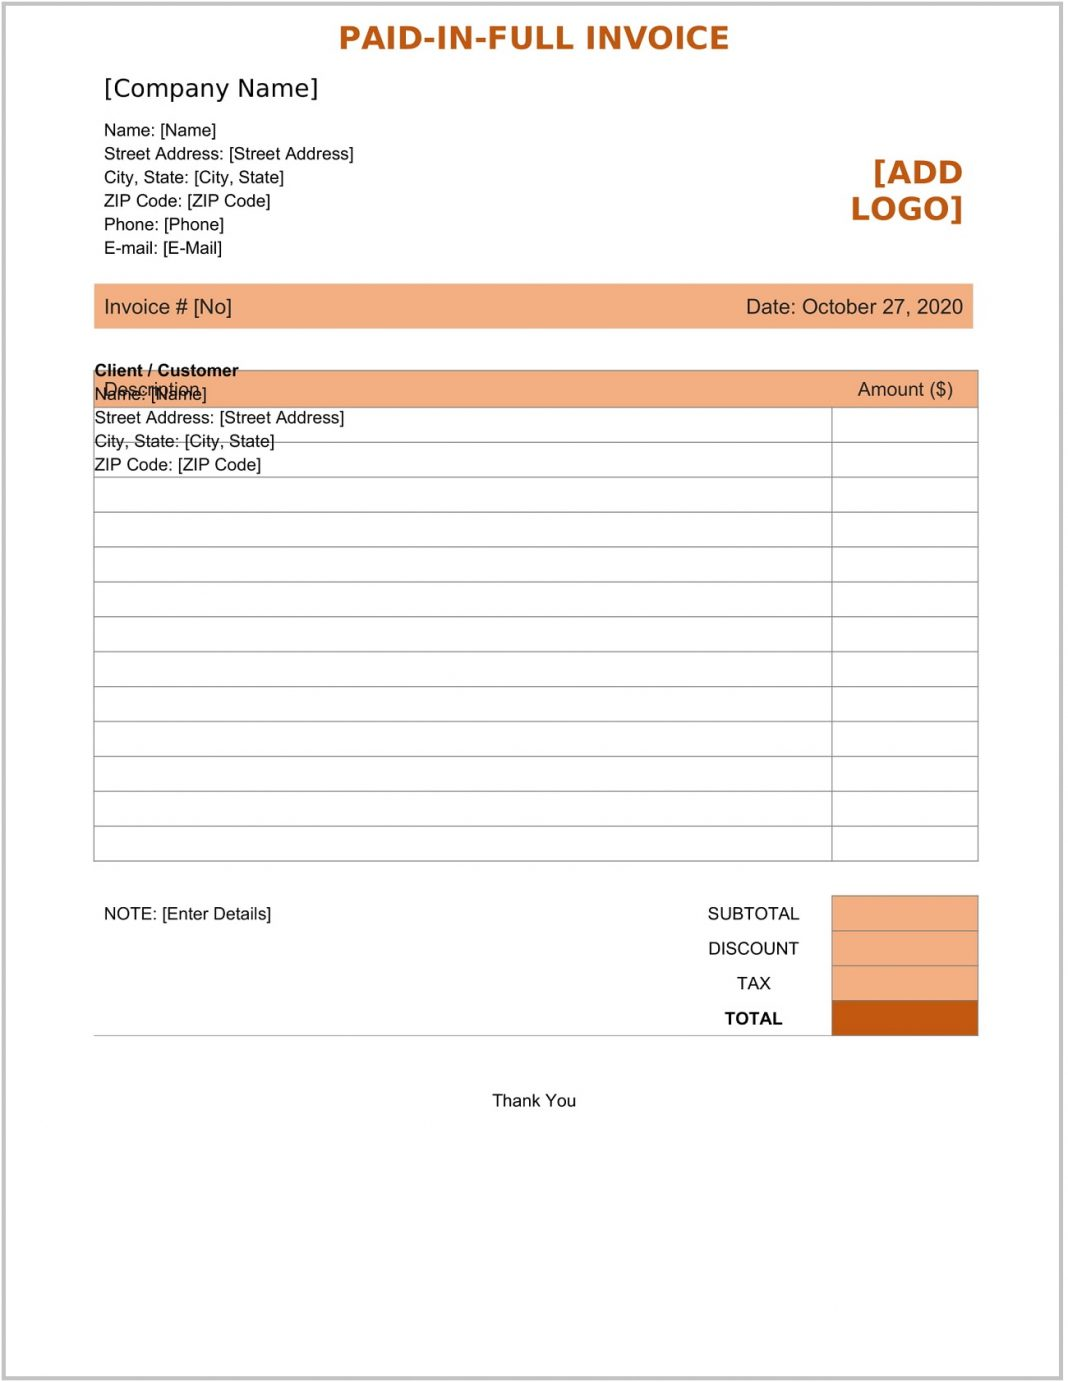 Paid In Full Invoice Template Word Form Payment Receipt Free Pdf  (in-full) Sample Large